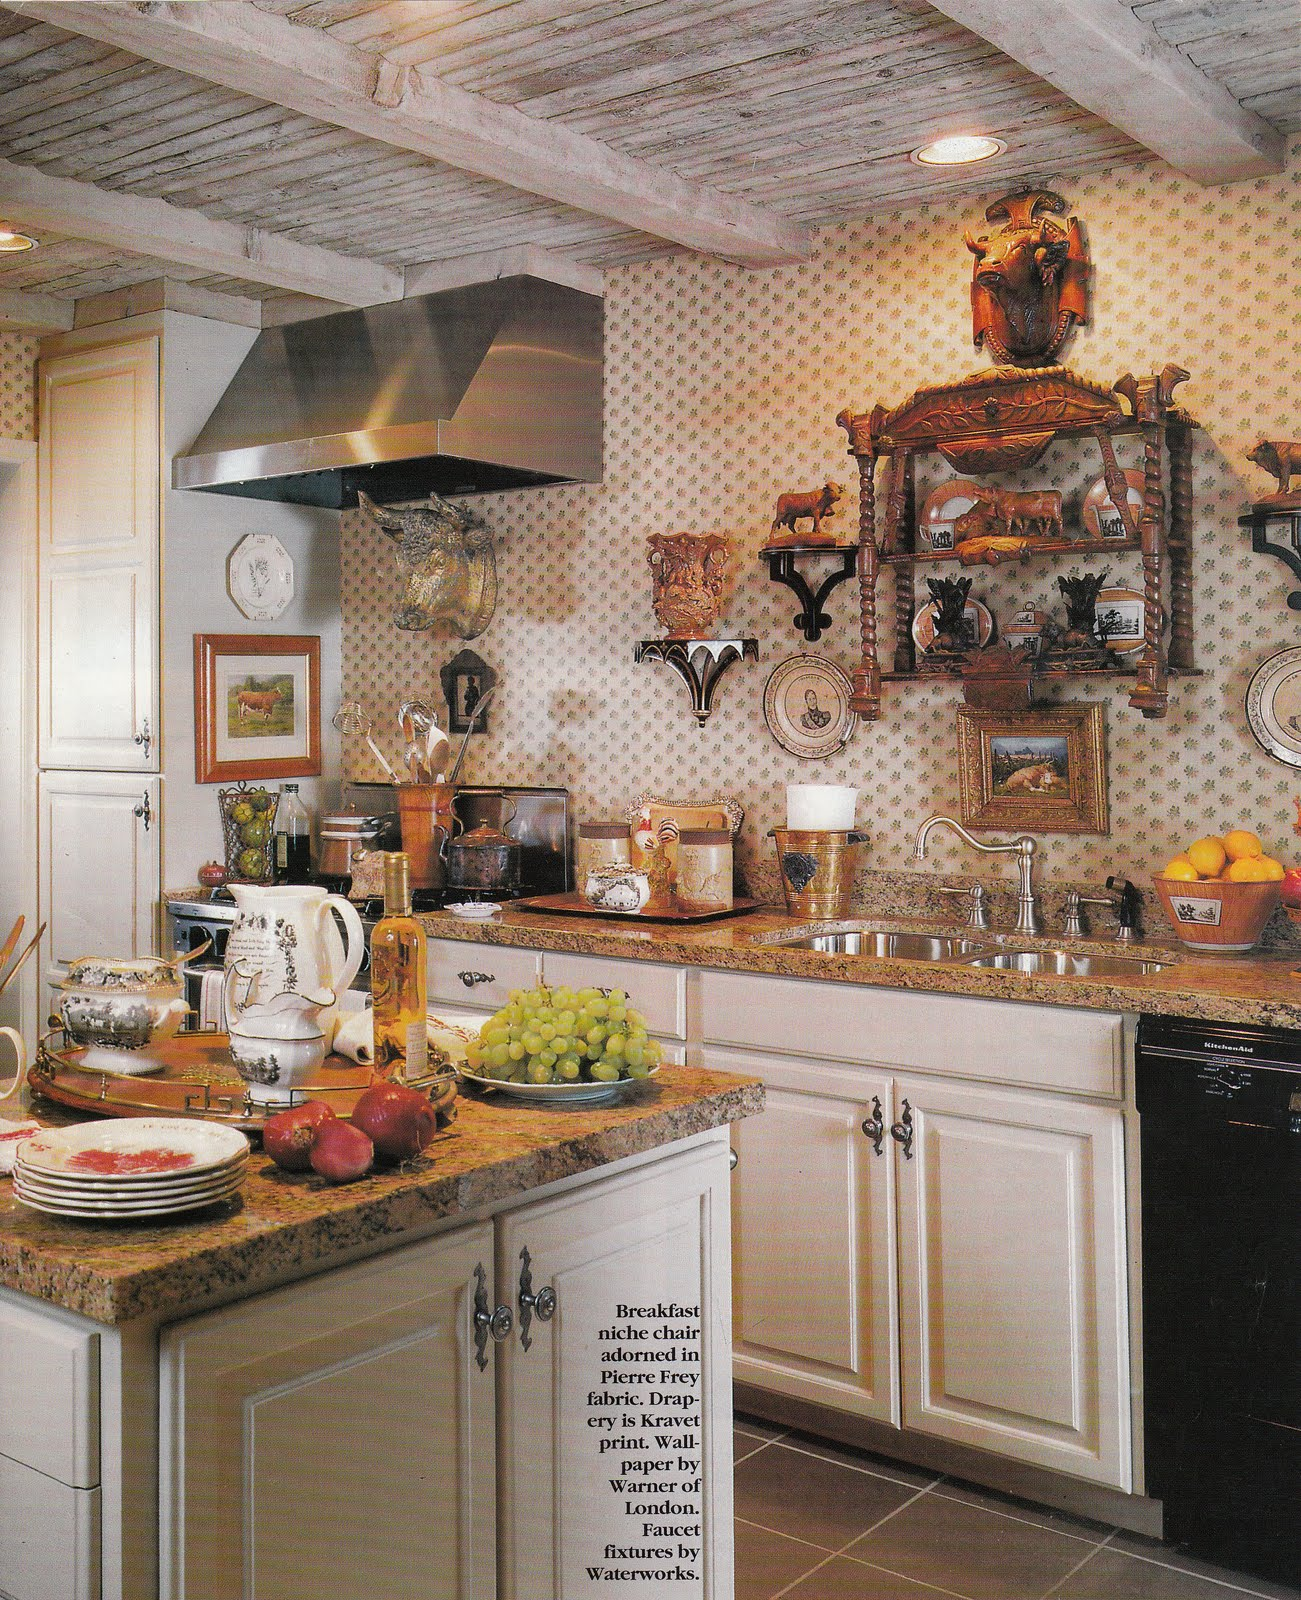 Hydrangea hill cottage french country decorating for French country kitchen ideas pictures